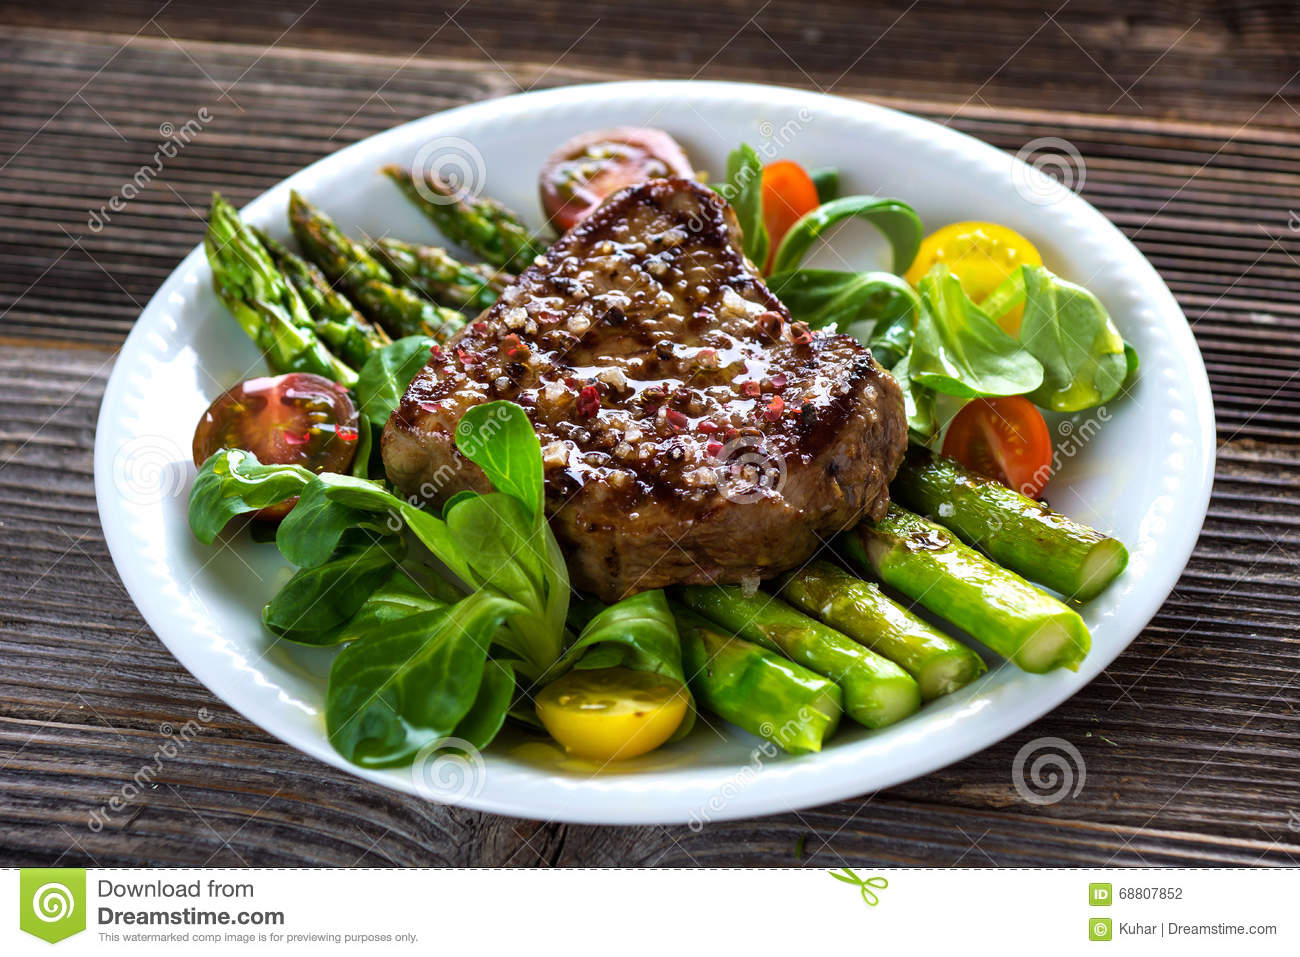 Beef Steak With Grilled Asparagus Stock Photo - Image of ...